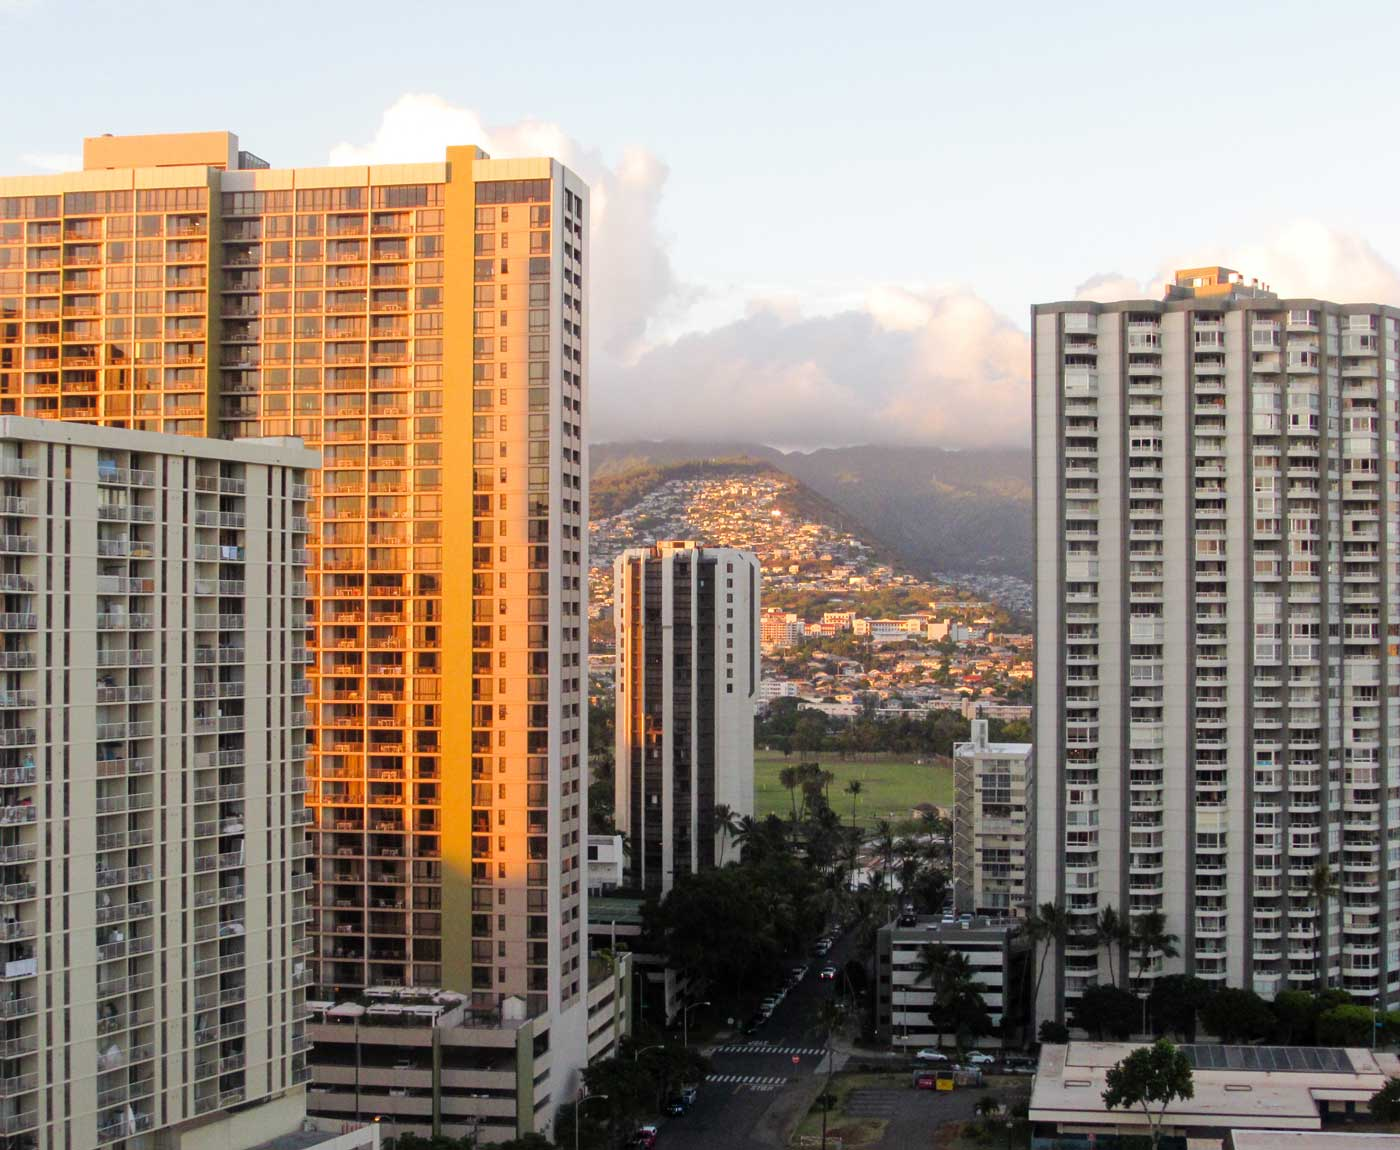 Honolulu Travel Guide - 45 things to do in Honolulu - Christobel Travel